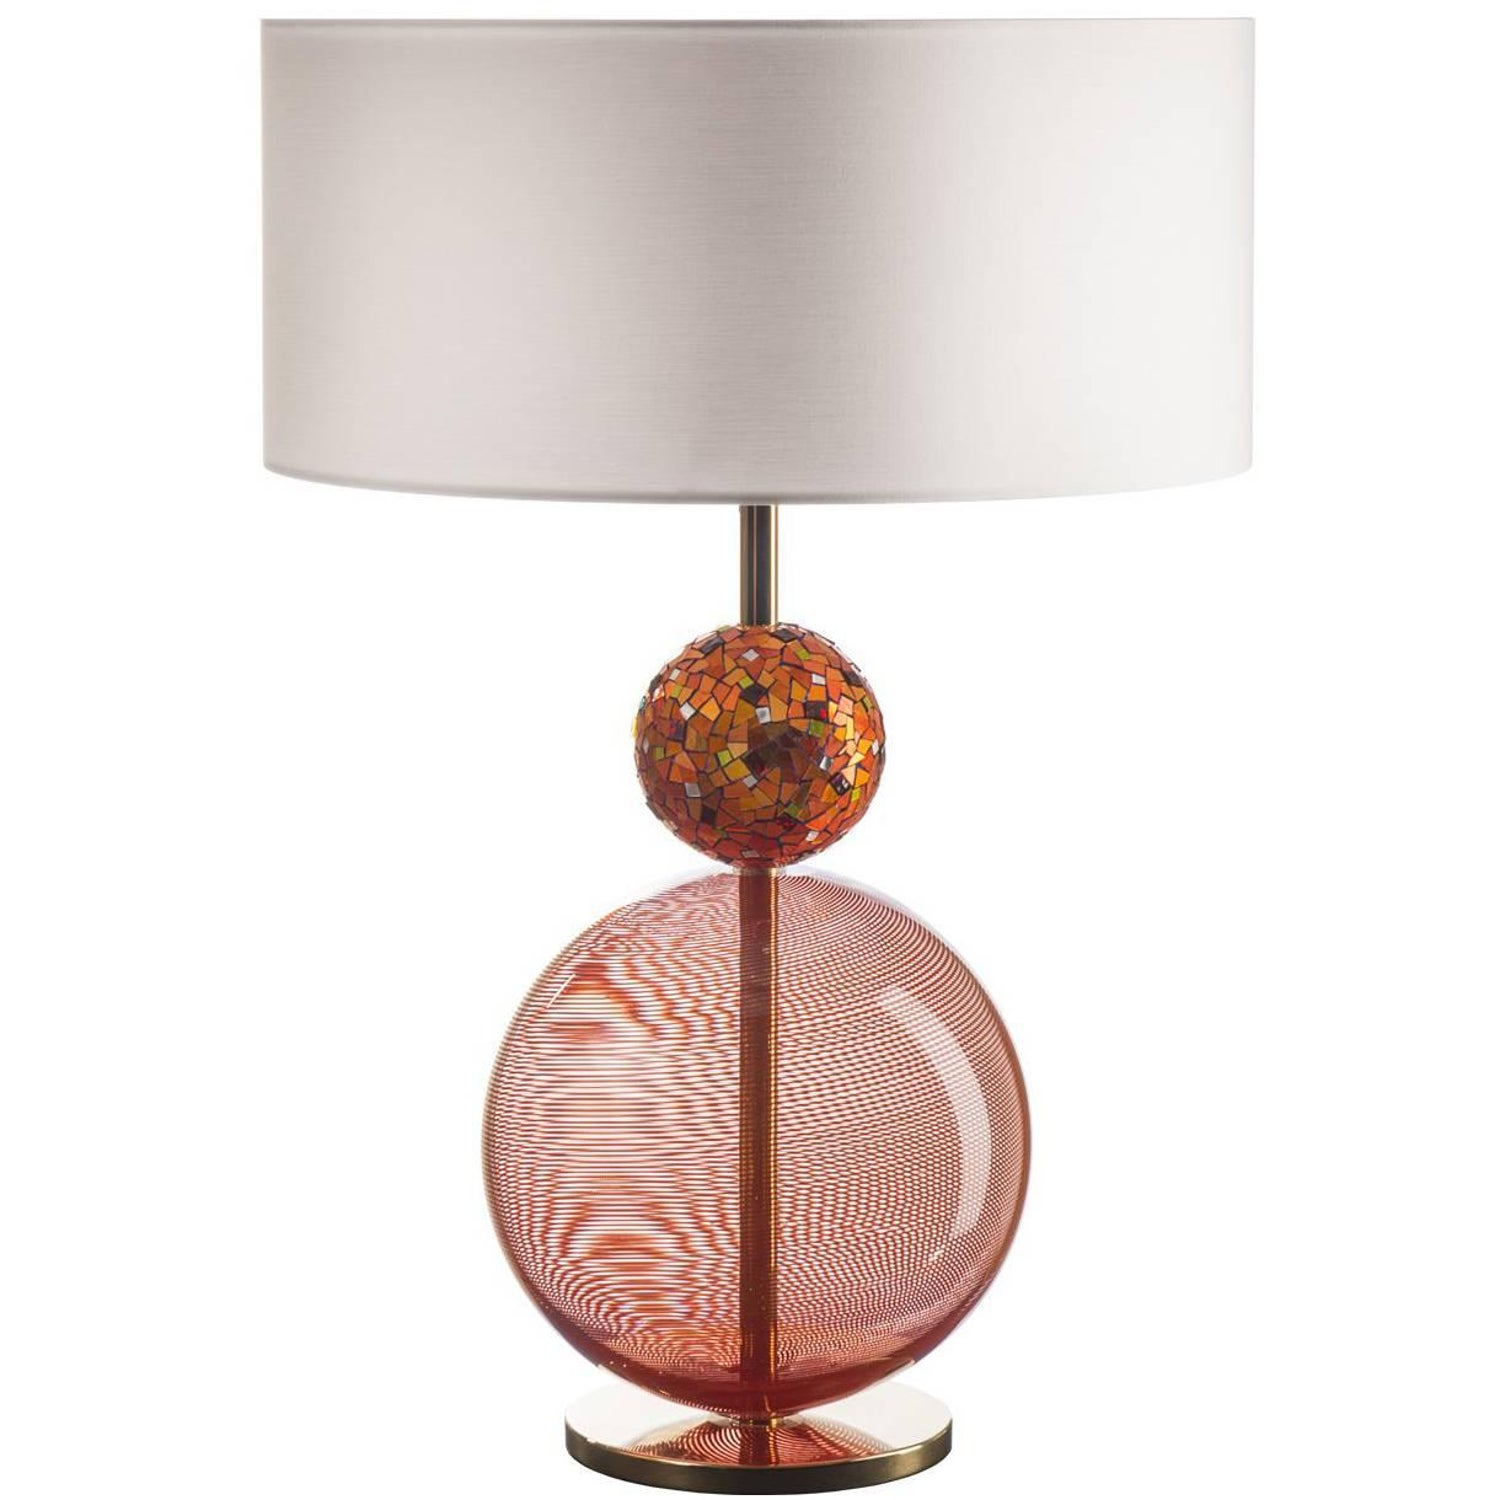 Infinito Orange Table Lamp For Sale At 1stdibs